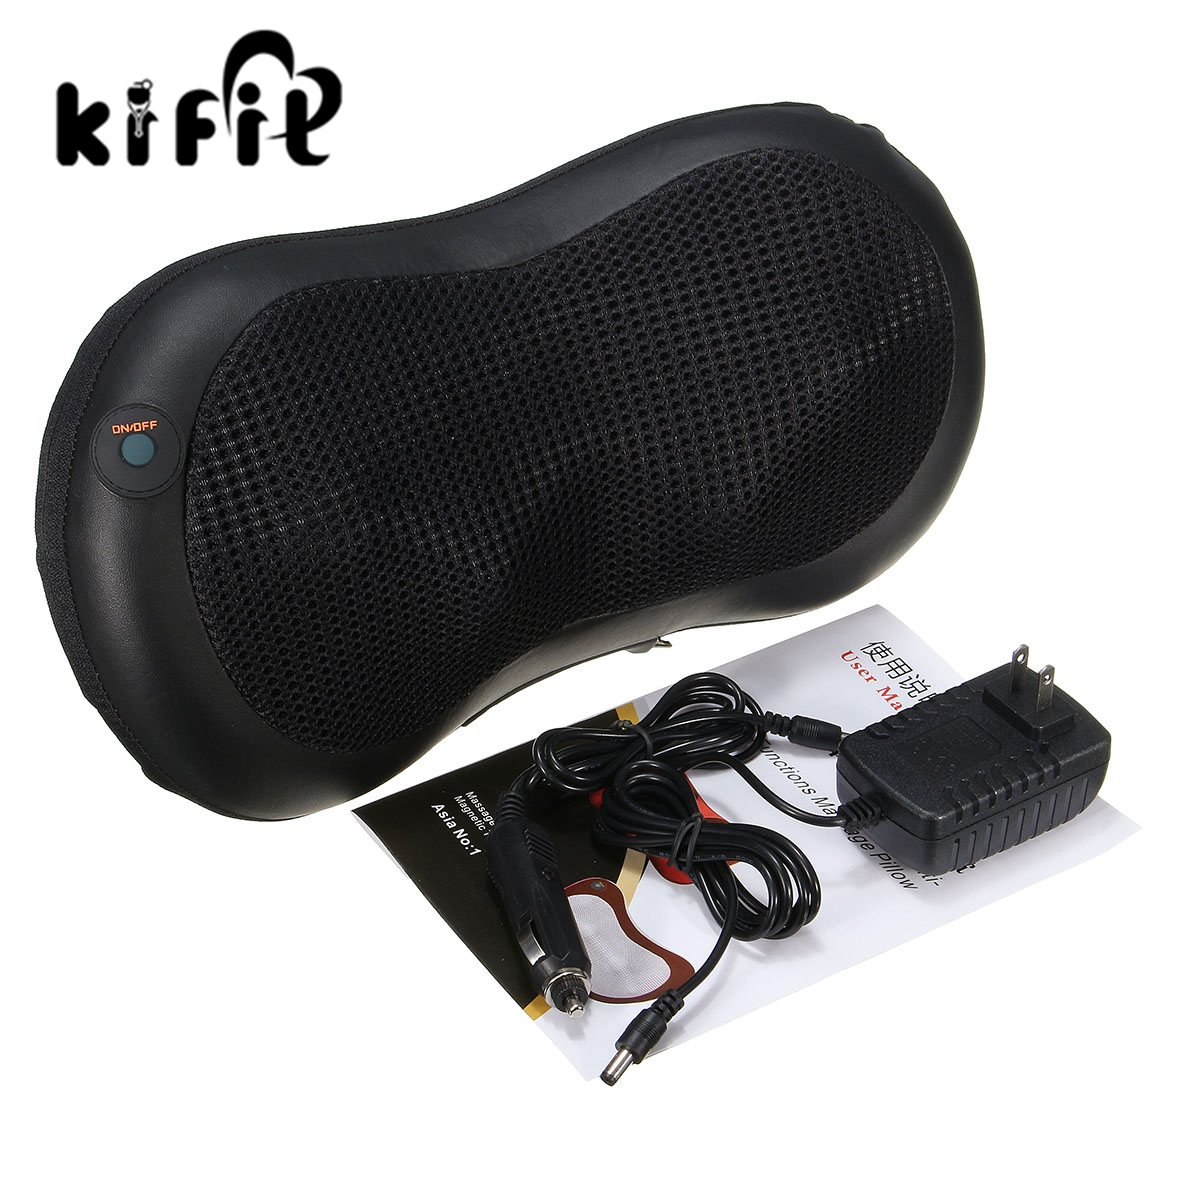 KIFIT Modern Electric Massager Body Lumbar Massage Pillow Cushion Neck Knead Shoulder Back Home Car Health Care Tool kifit convenient handheld ice cooling roller facial skin care beauty face body massage home used health tool